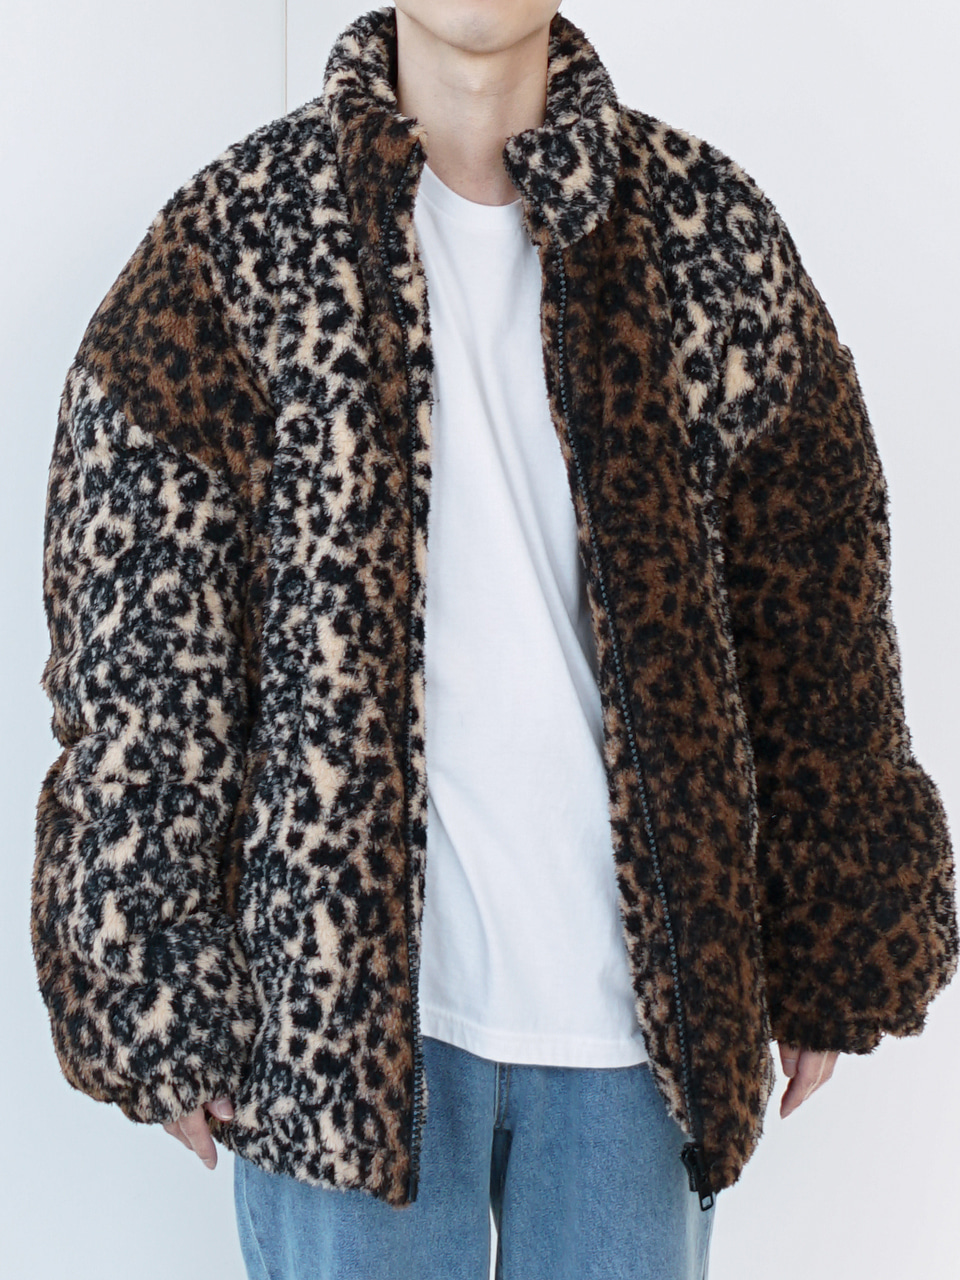 Reeves Leopard Patterned Jacket (2color)